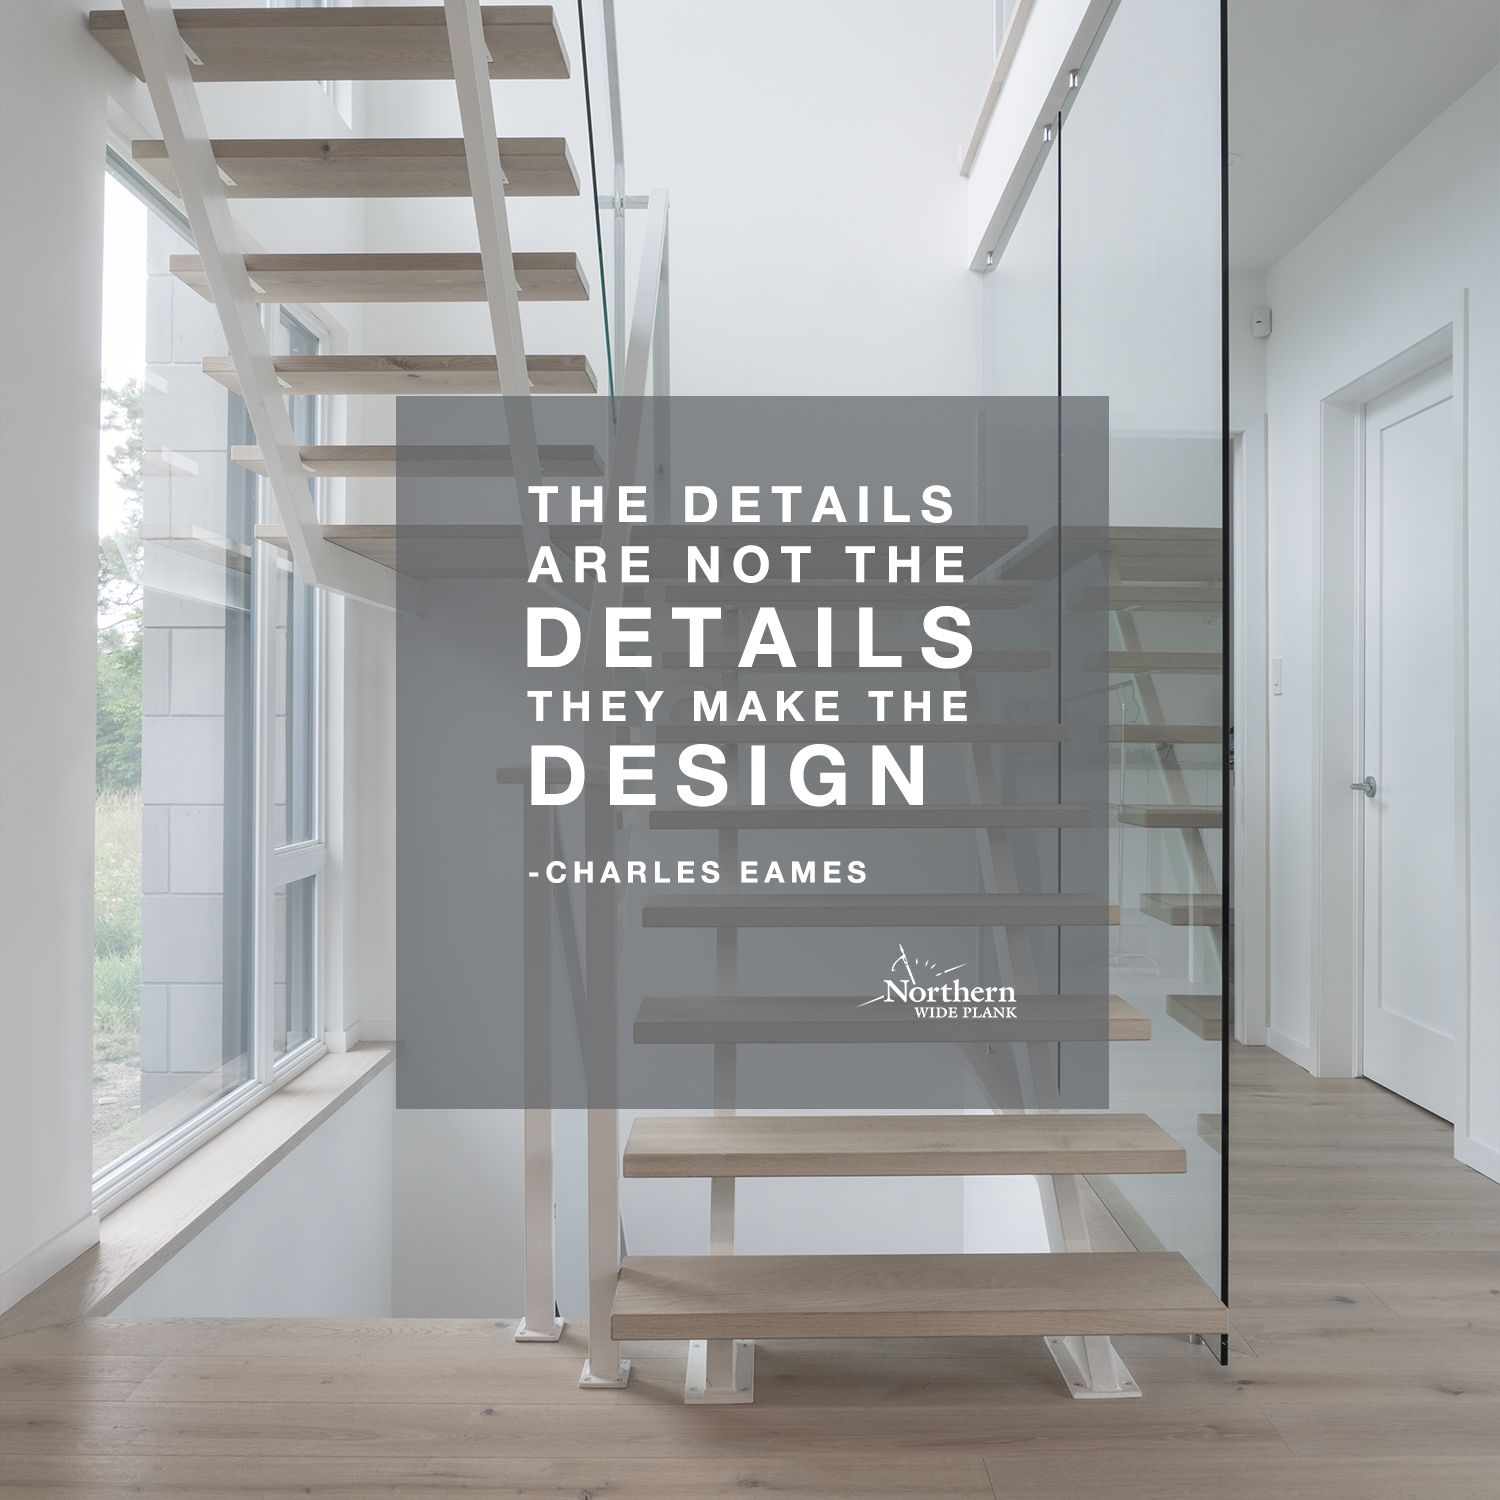 The Details Are Not The Details, They Make The Design